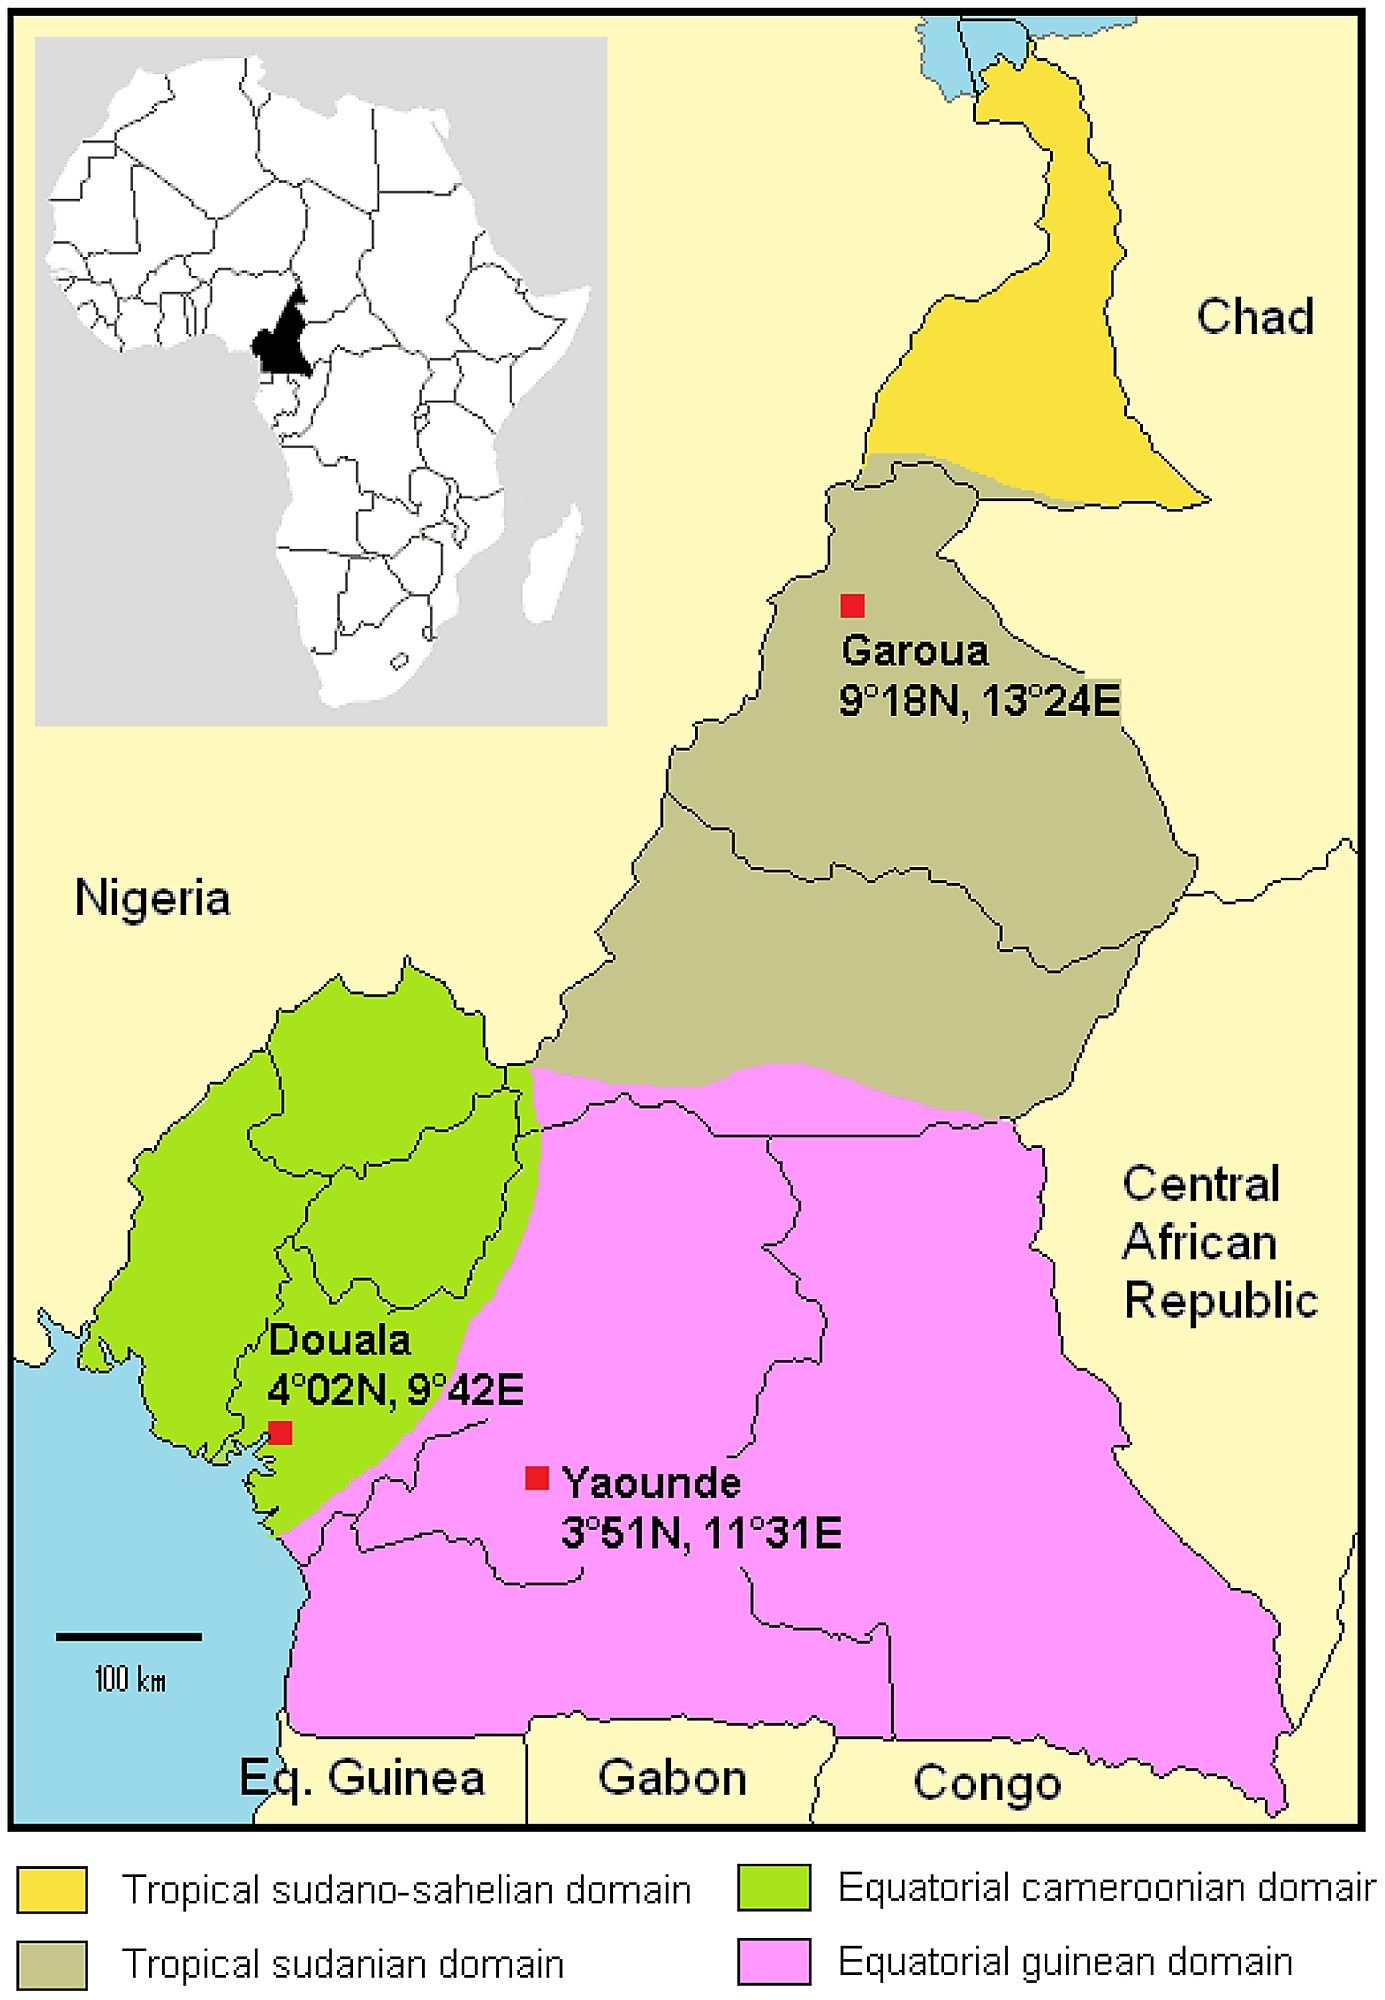 Map of Cameroon: main climatic zones and location of the 3 study sites.